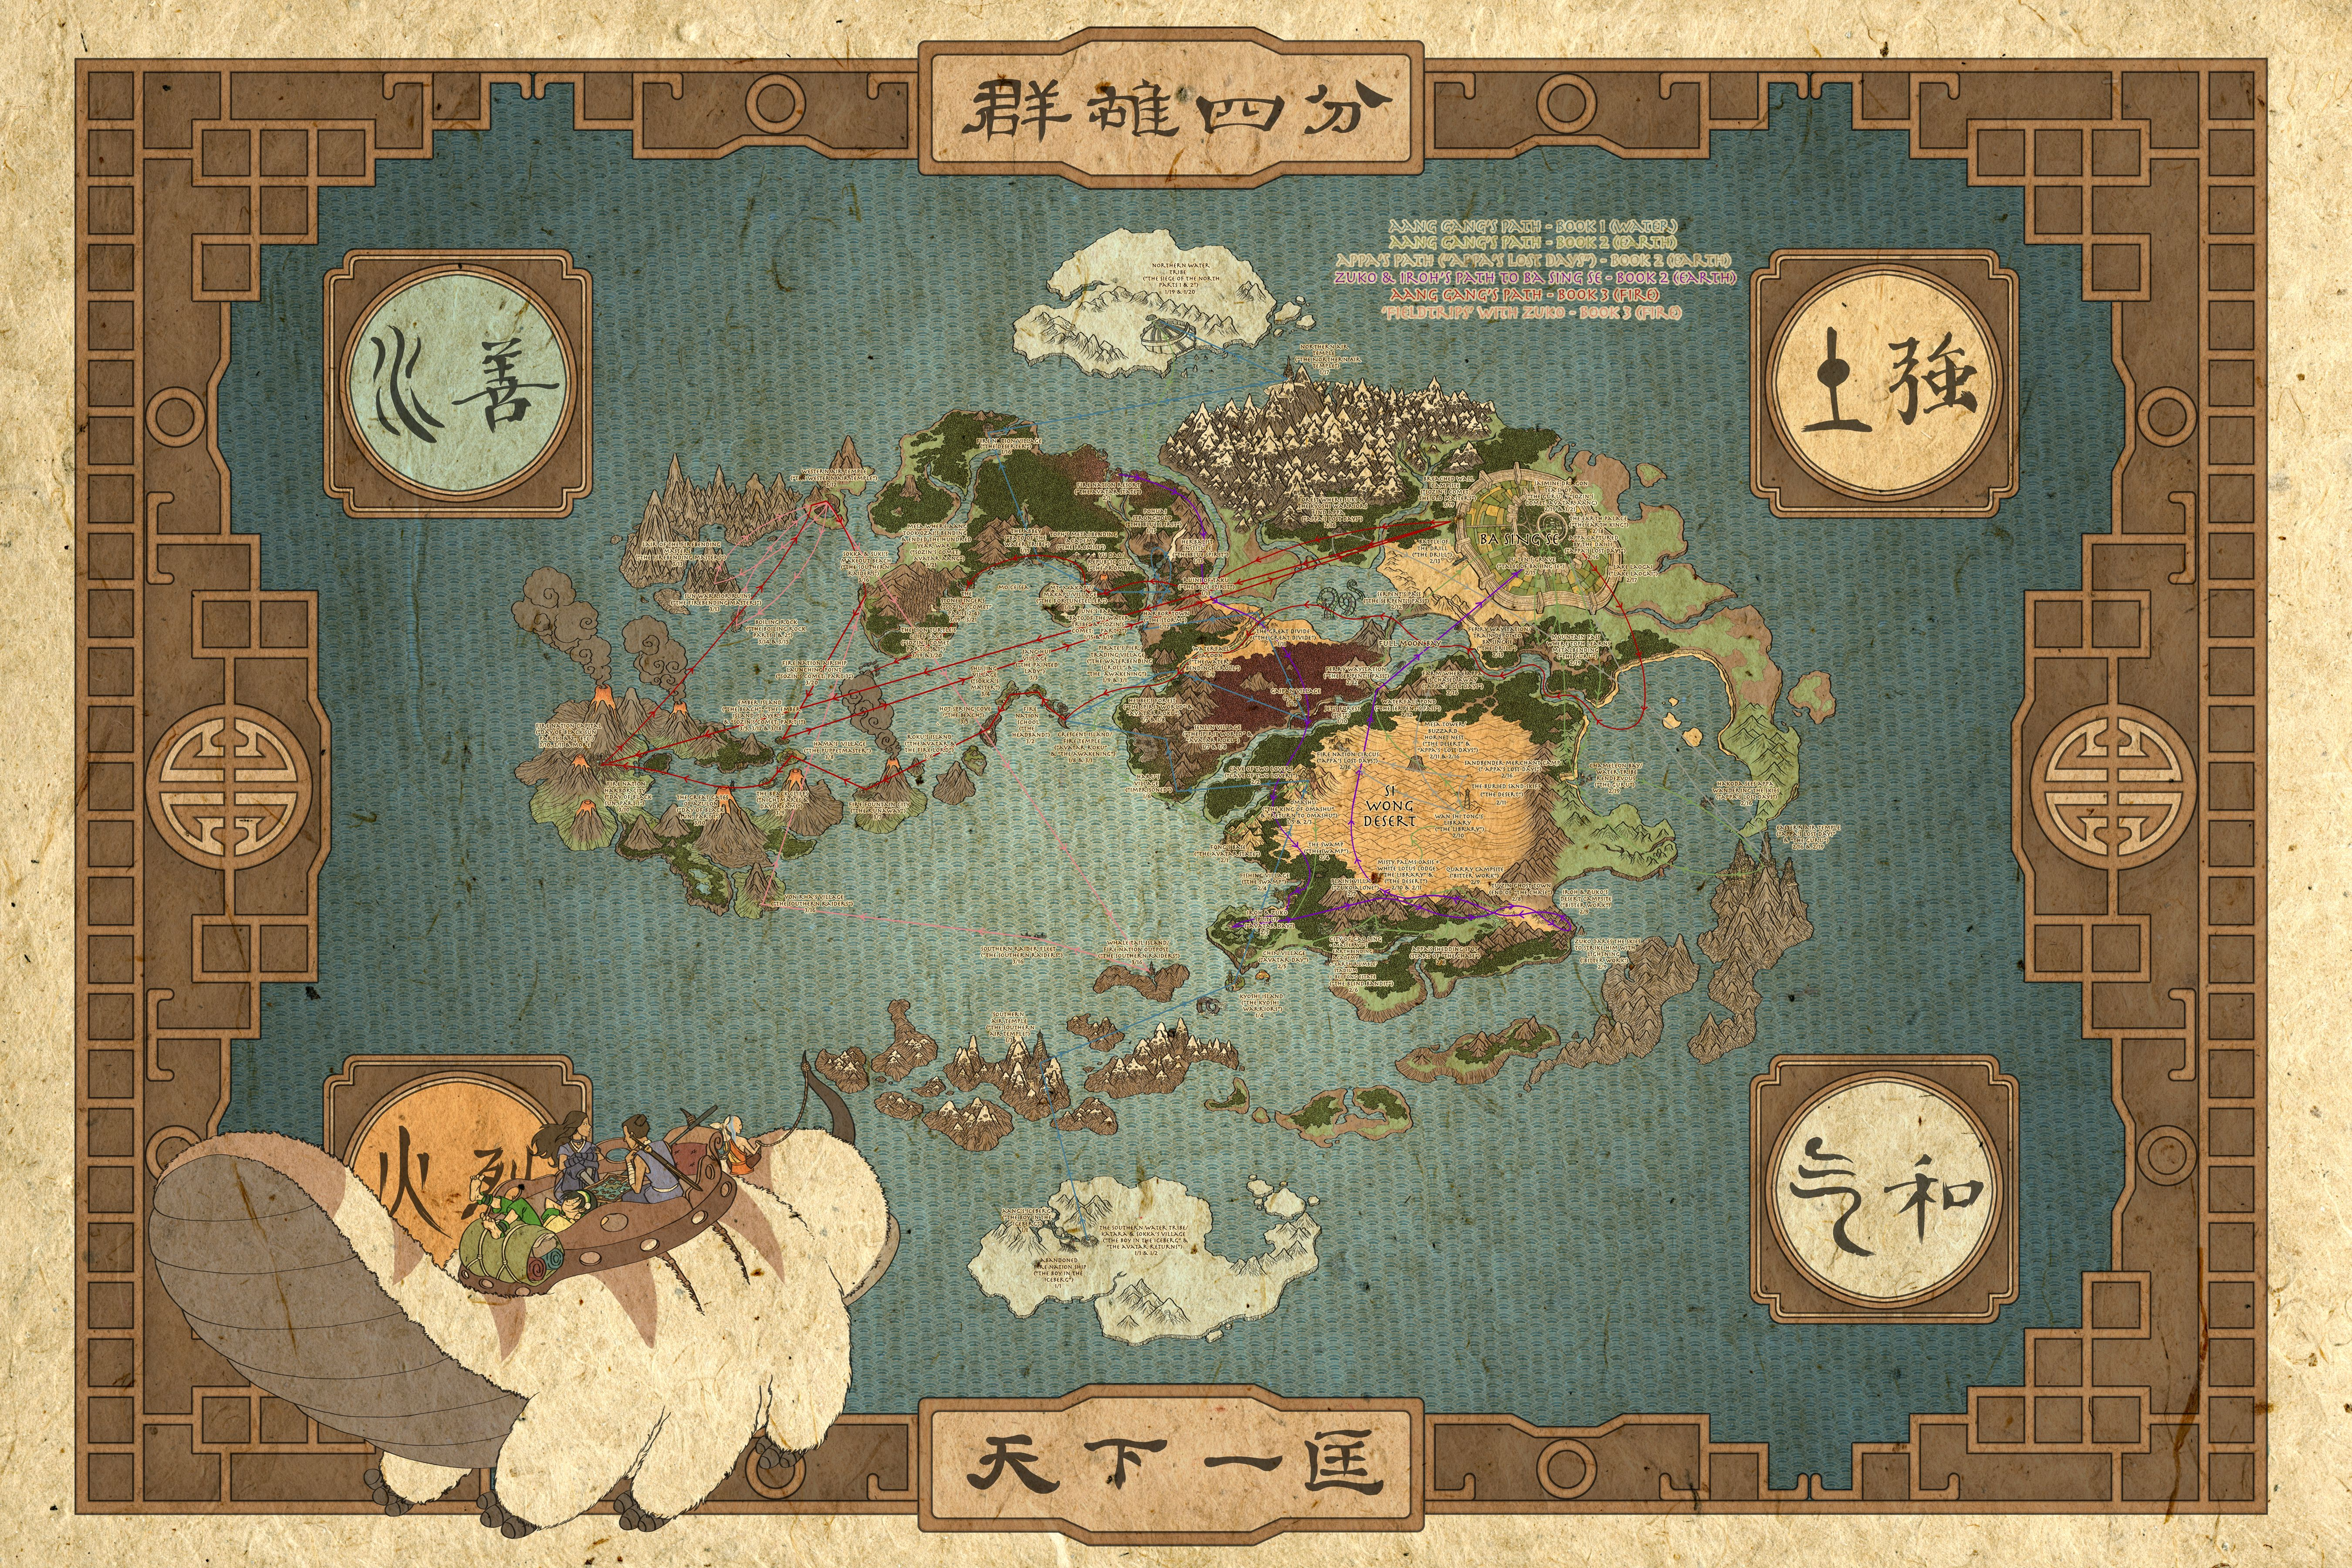 Avatar The Last Airbender World Map The Journey   This is a BEAUTIFUL map of their world, charting